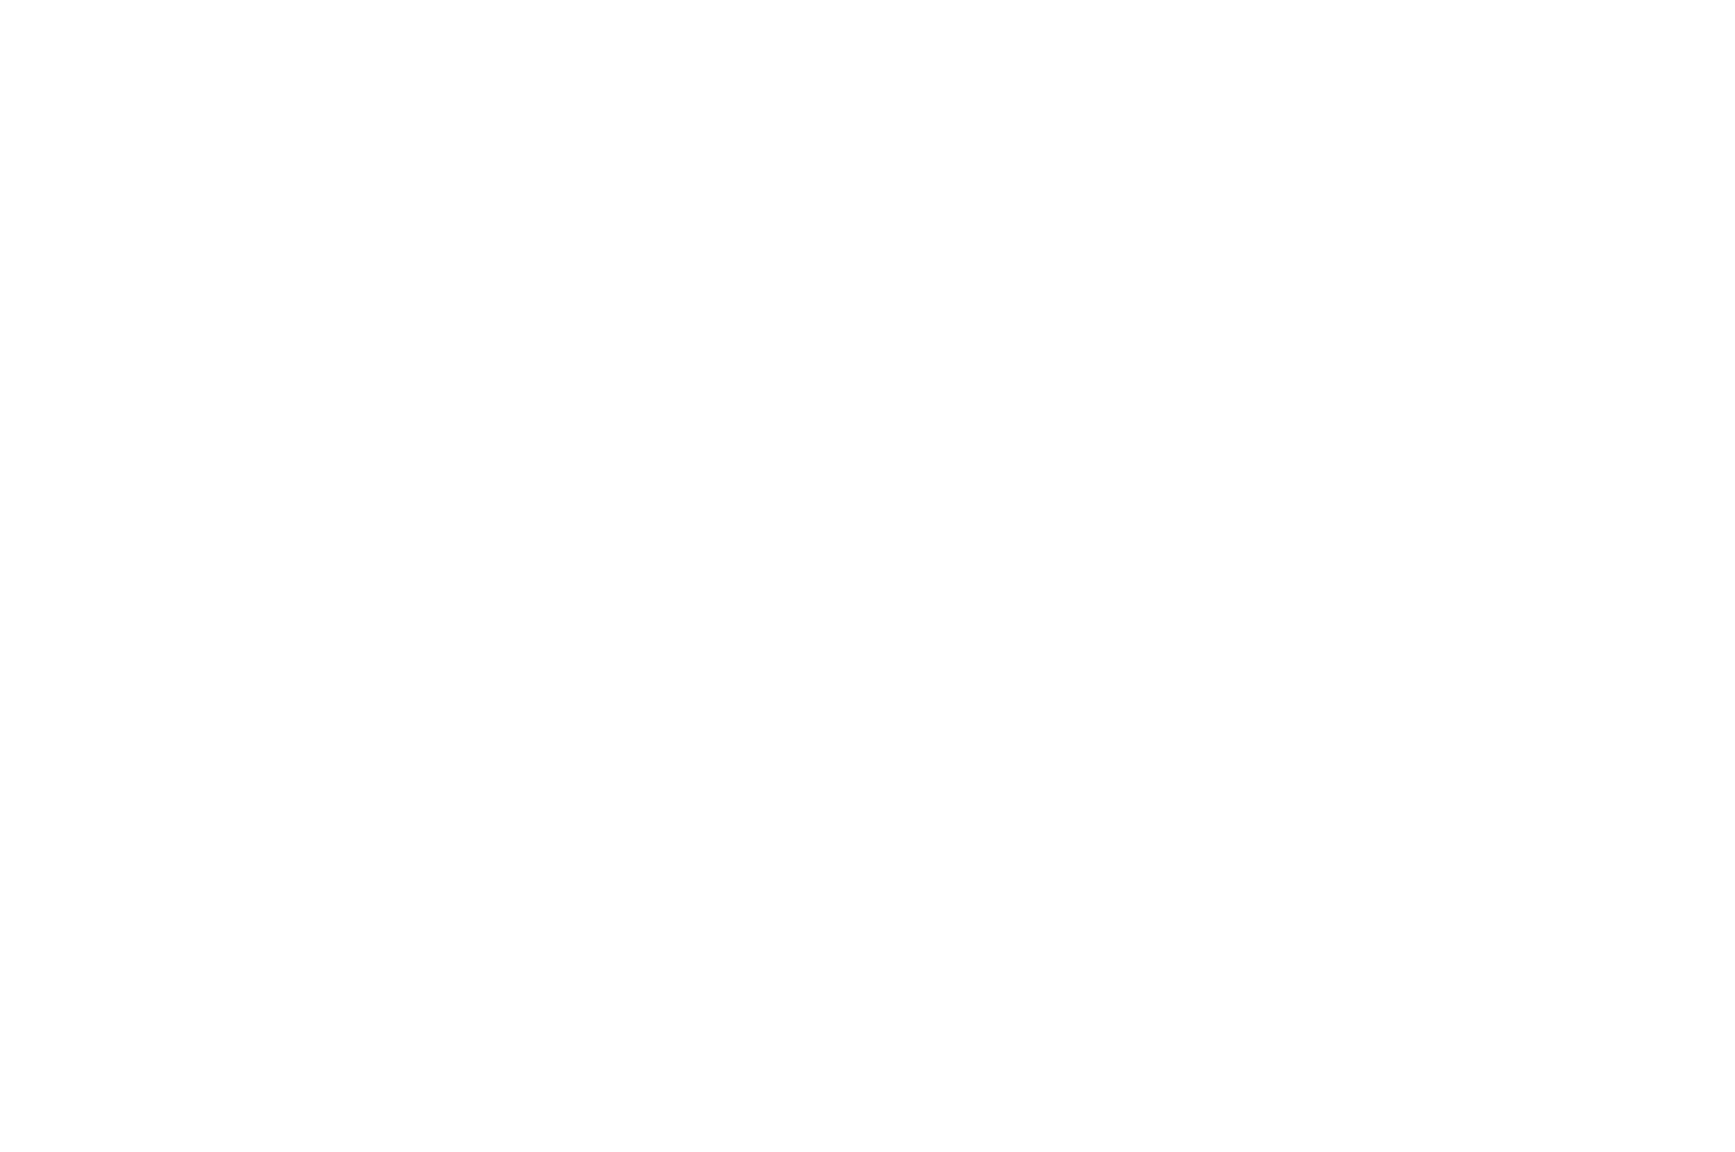 QUARTER-FINALIST - Slamdance Screenplay Competition